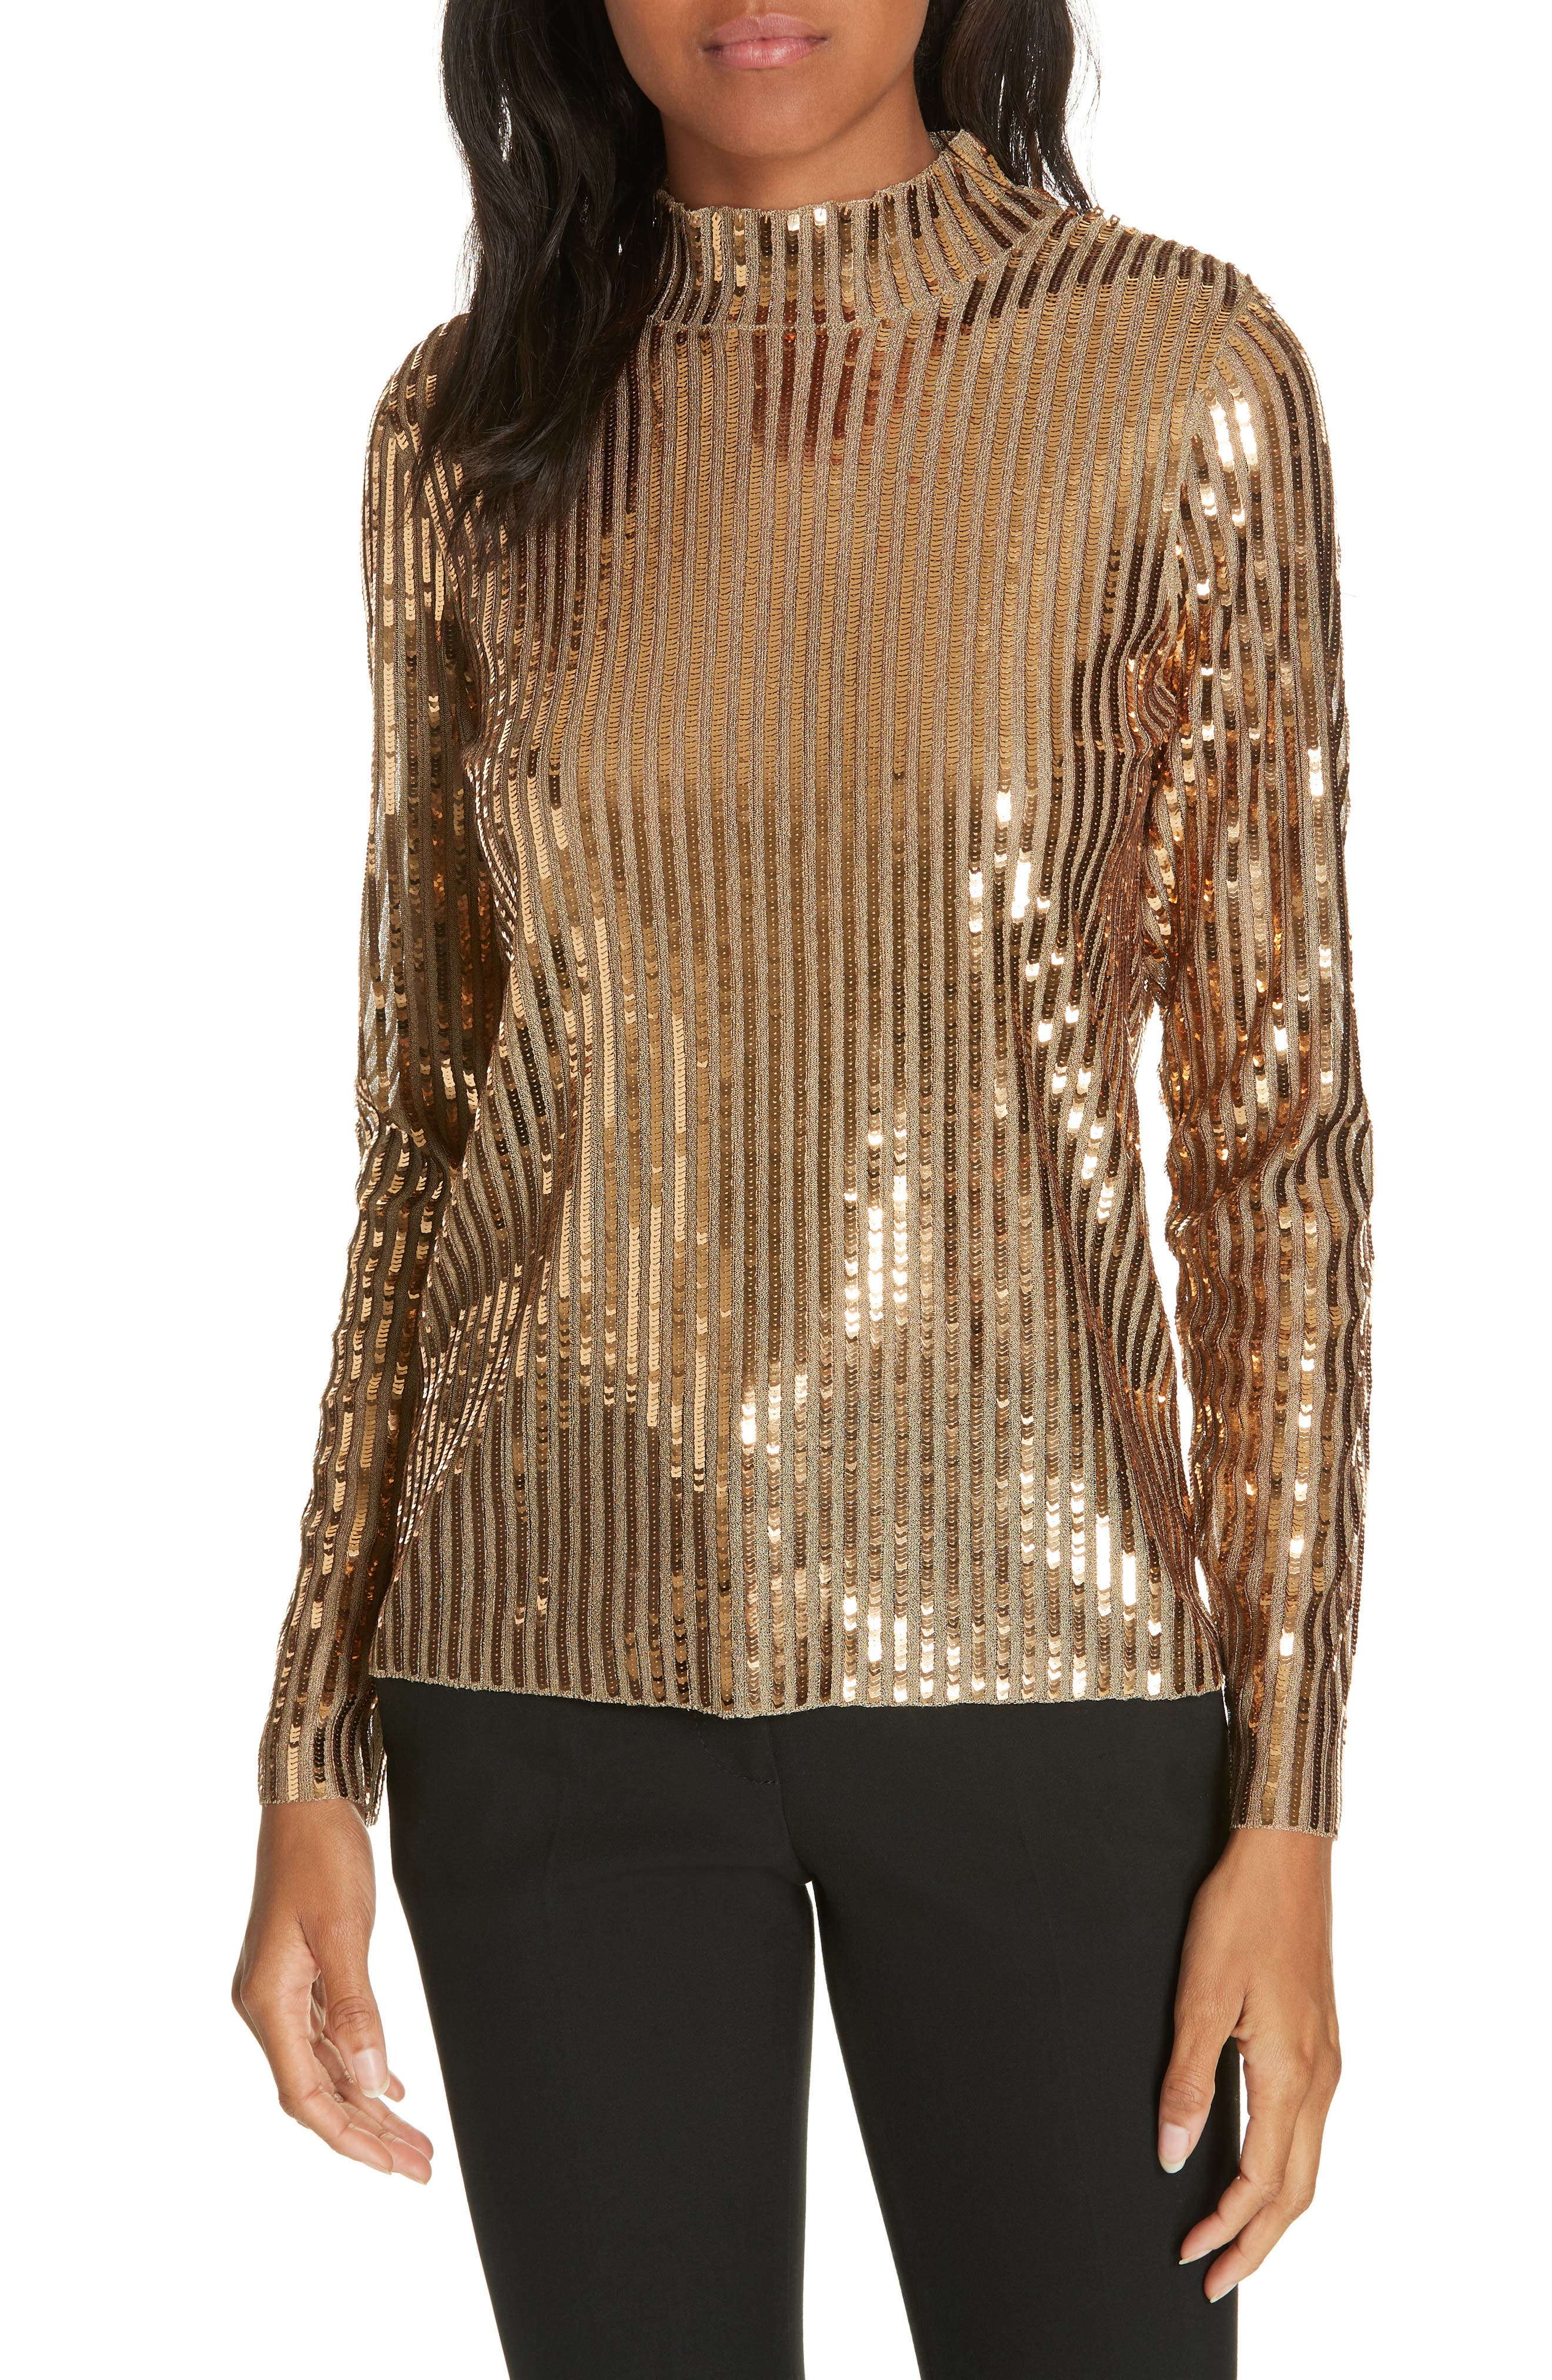 TANYA TAYLOR Grace Gold Sequins Top, Main, color, 712